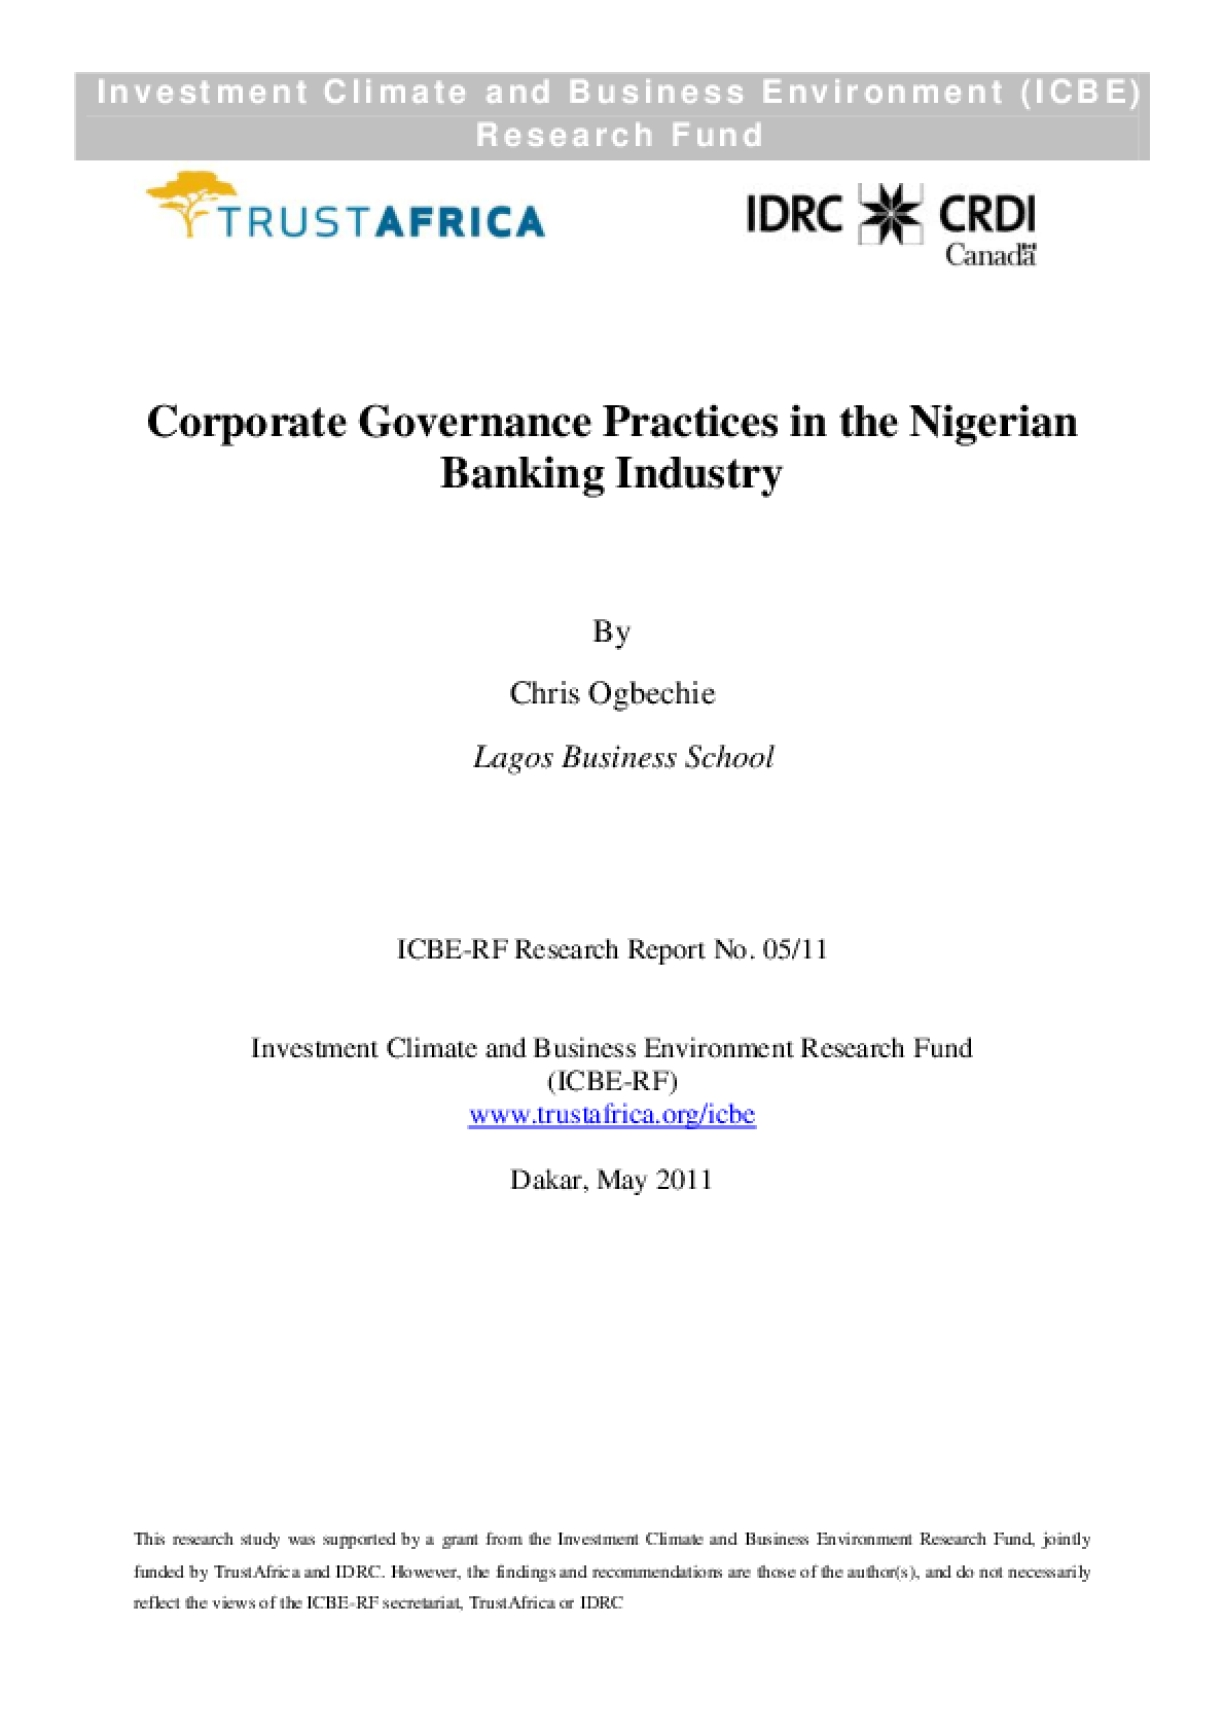 Corporate Governance Practices in the Nigerian Banking Industry